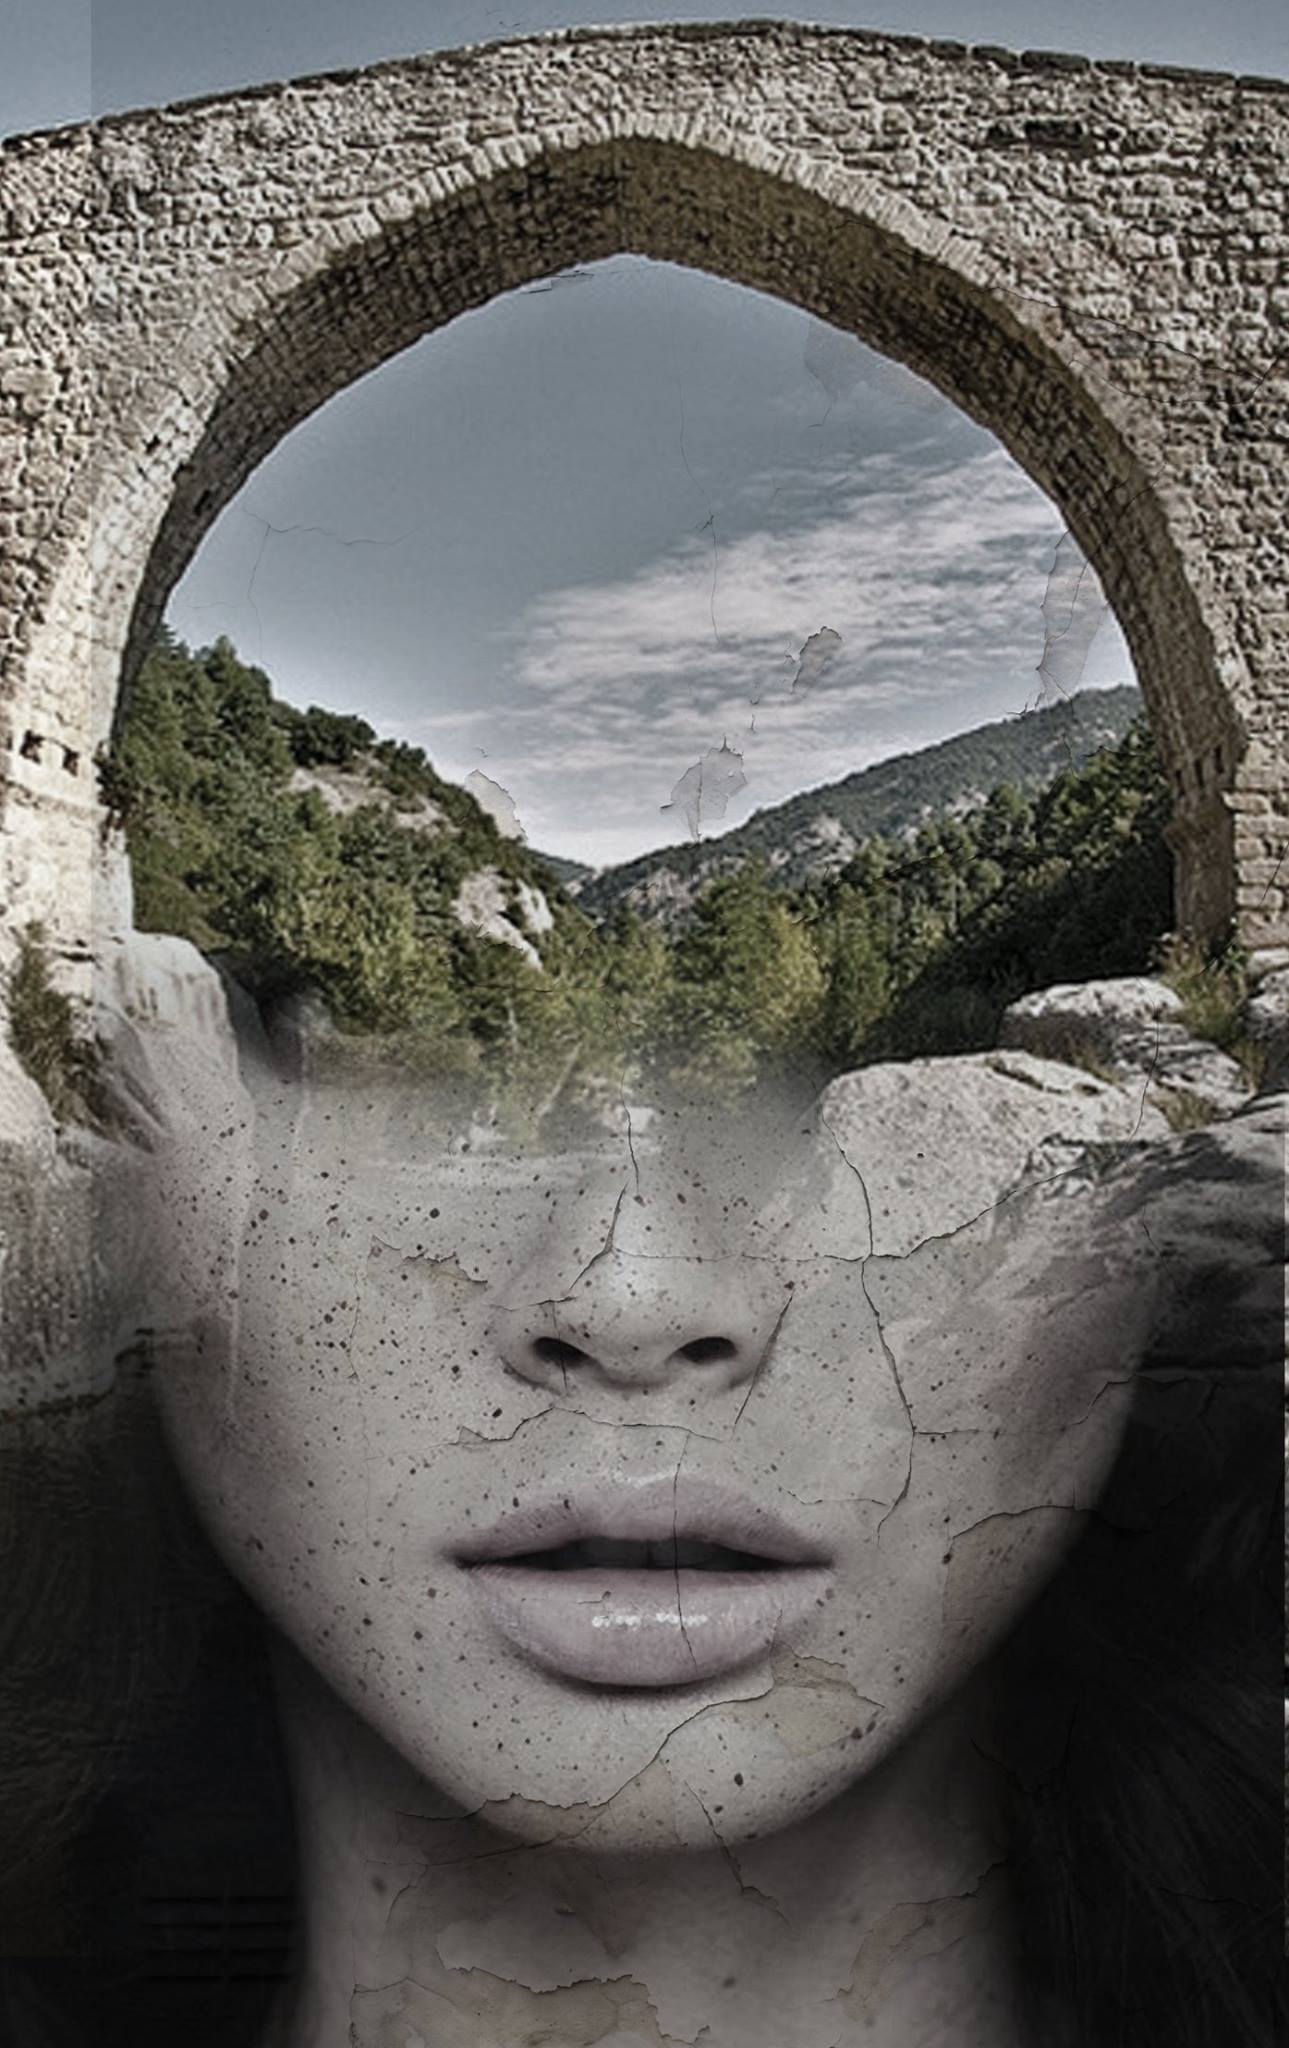 Collage Antonio Mora - T&A 1